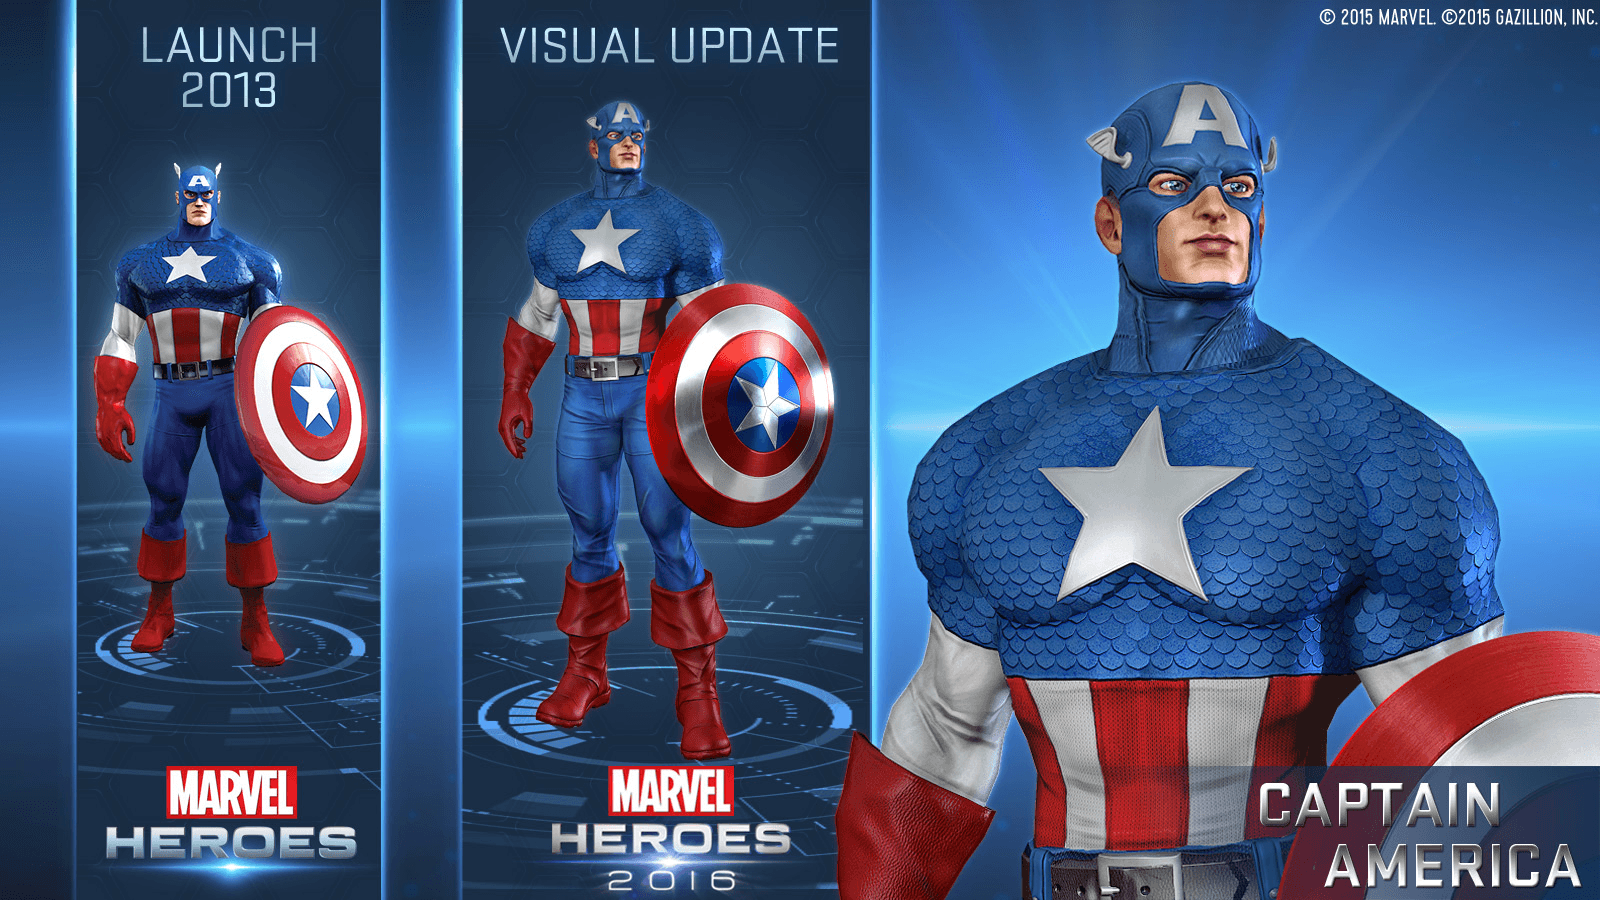 Gazillion Reveals What's in Store for Marvel Heroes 2016 news header